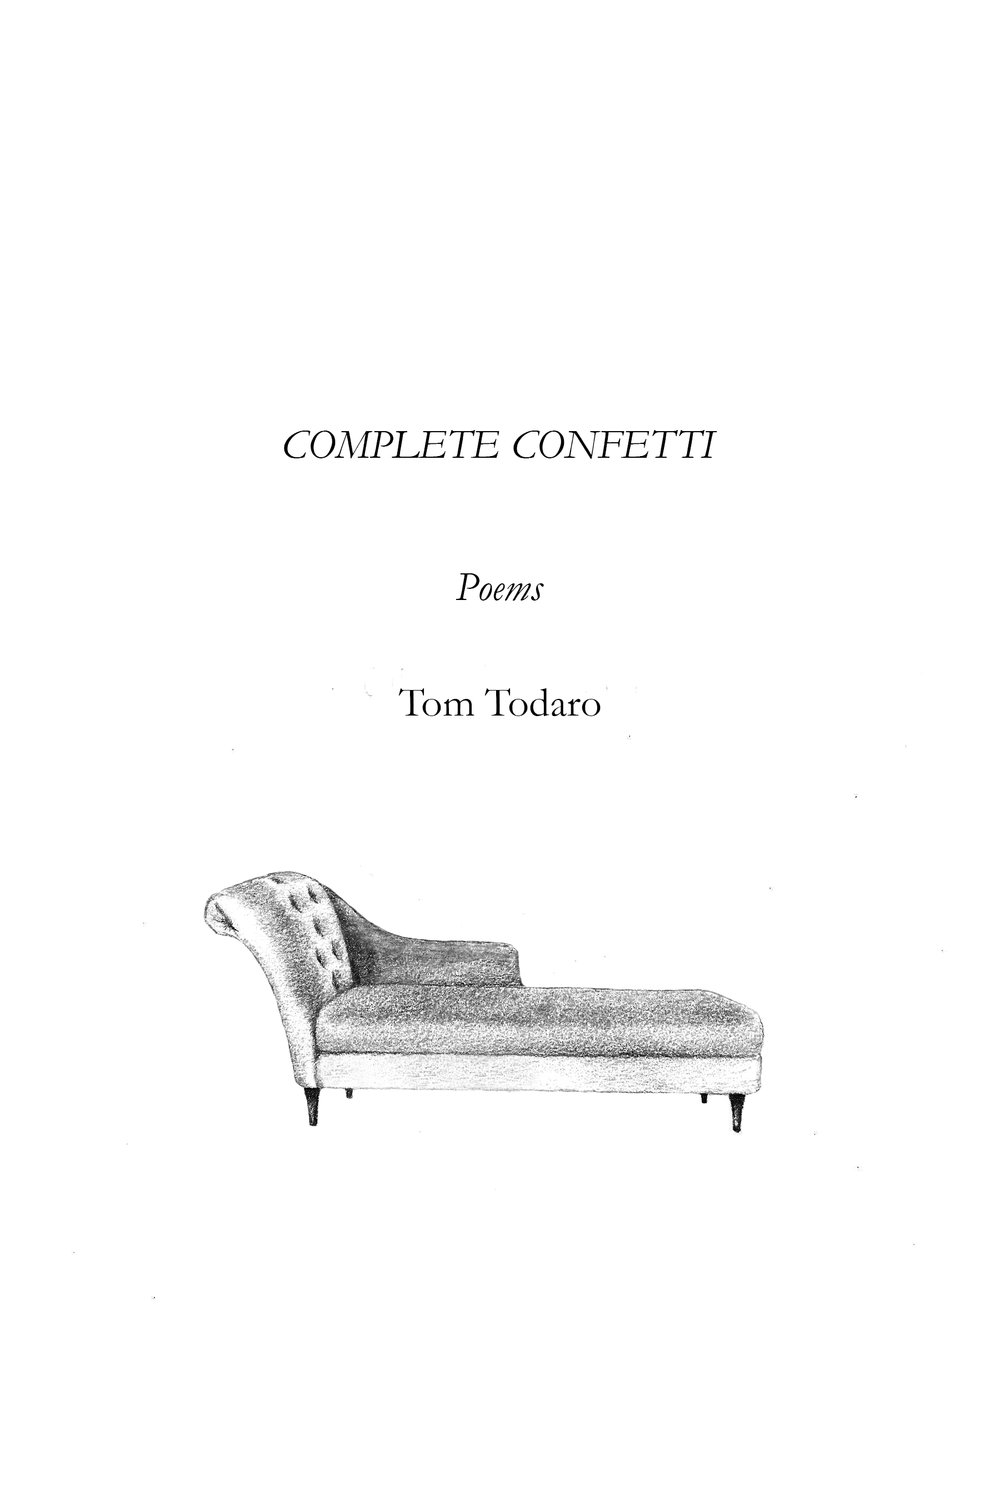 Cover design for  Complete Confetti, an independently published chapbook by Tom Todaro. 2014.